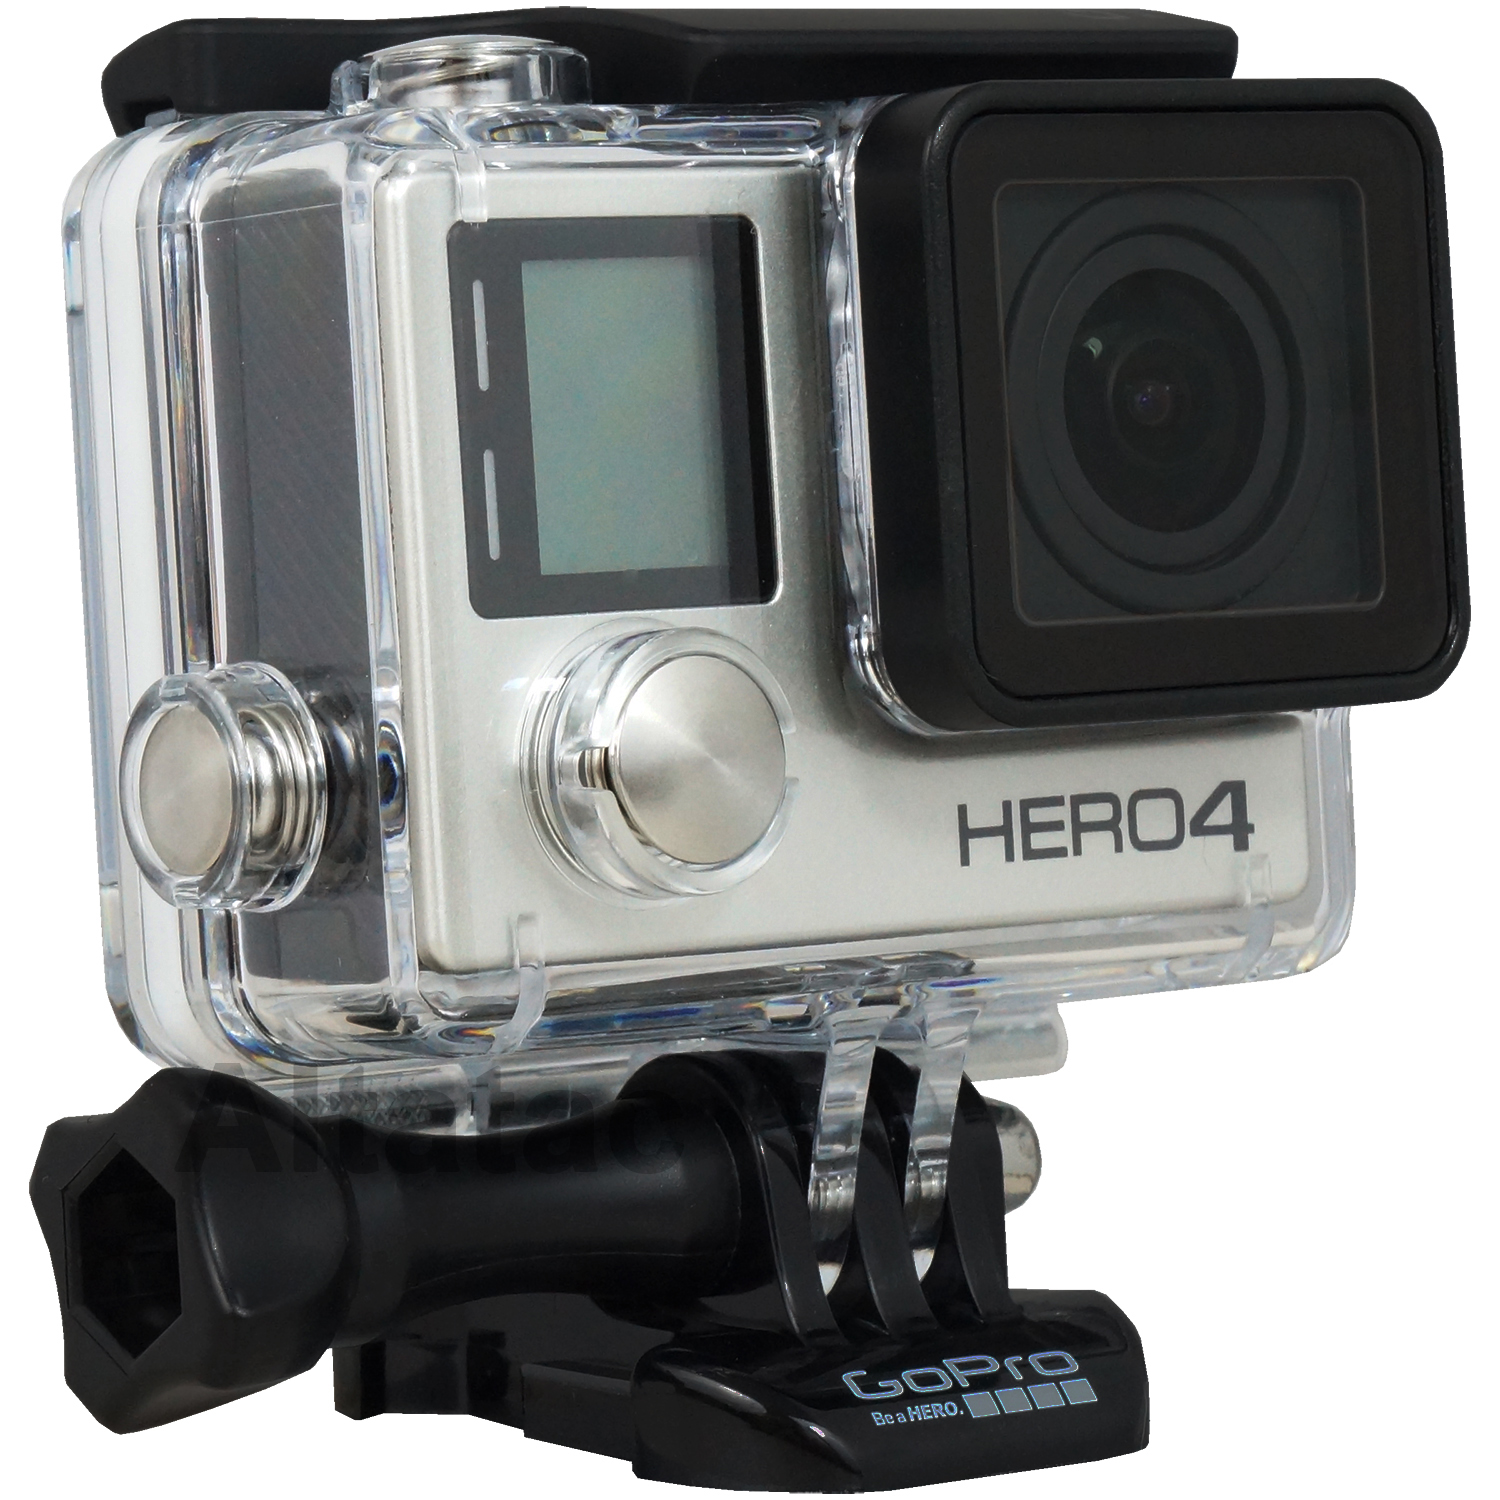 gopro hero4 black 4k 1080p hd action camera w bluetooth wi fi chdhx 401 ebay. Black Bedroom Furniture Sets. Home Design Ideas